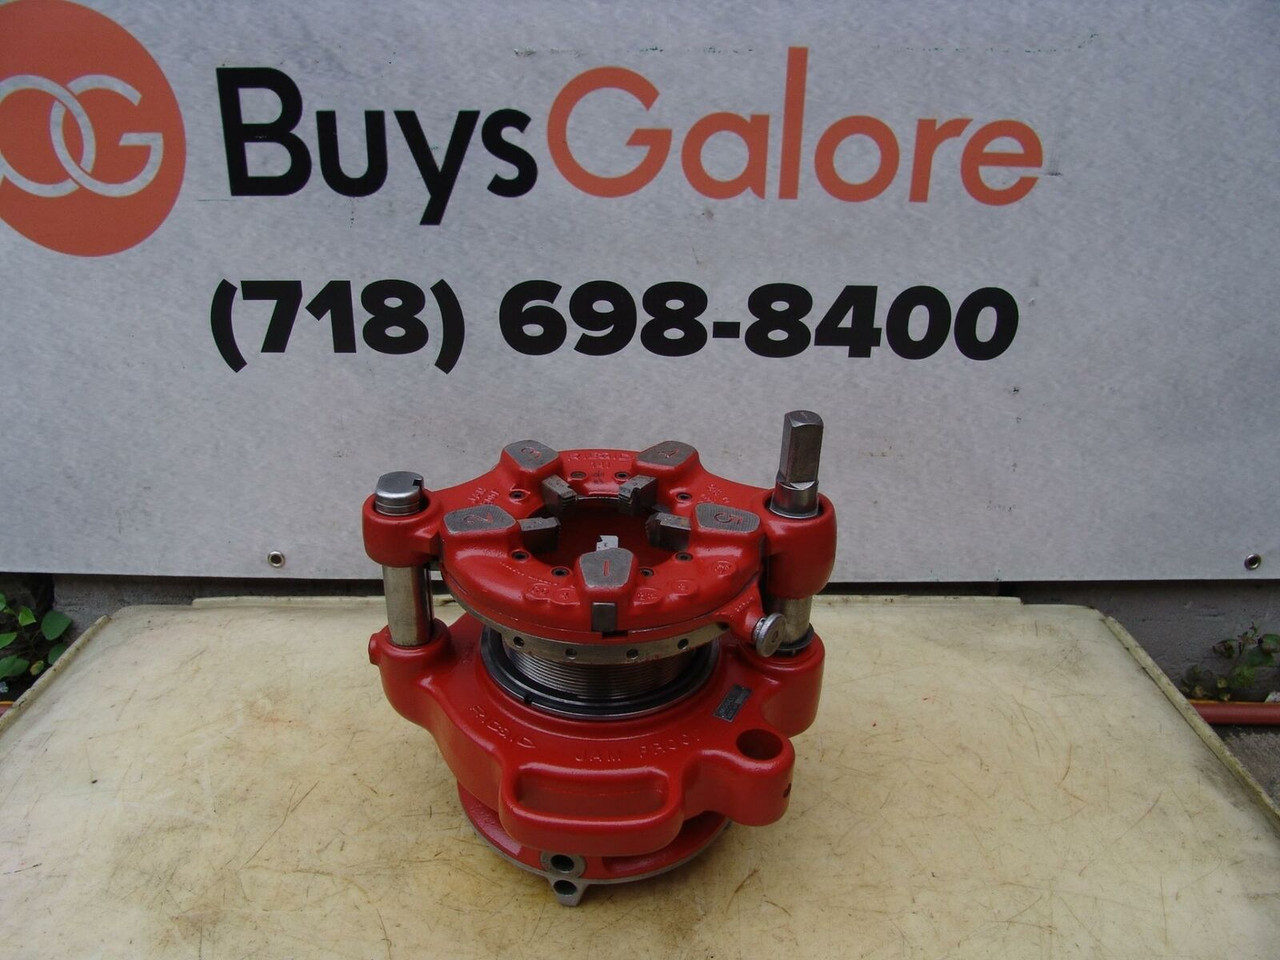 "Ridgid 141 Die Pipe Threader 1/2 to 4"" for 300 535 Threading Fully Refurbished 3"